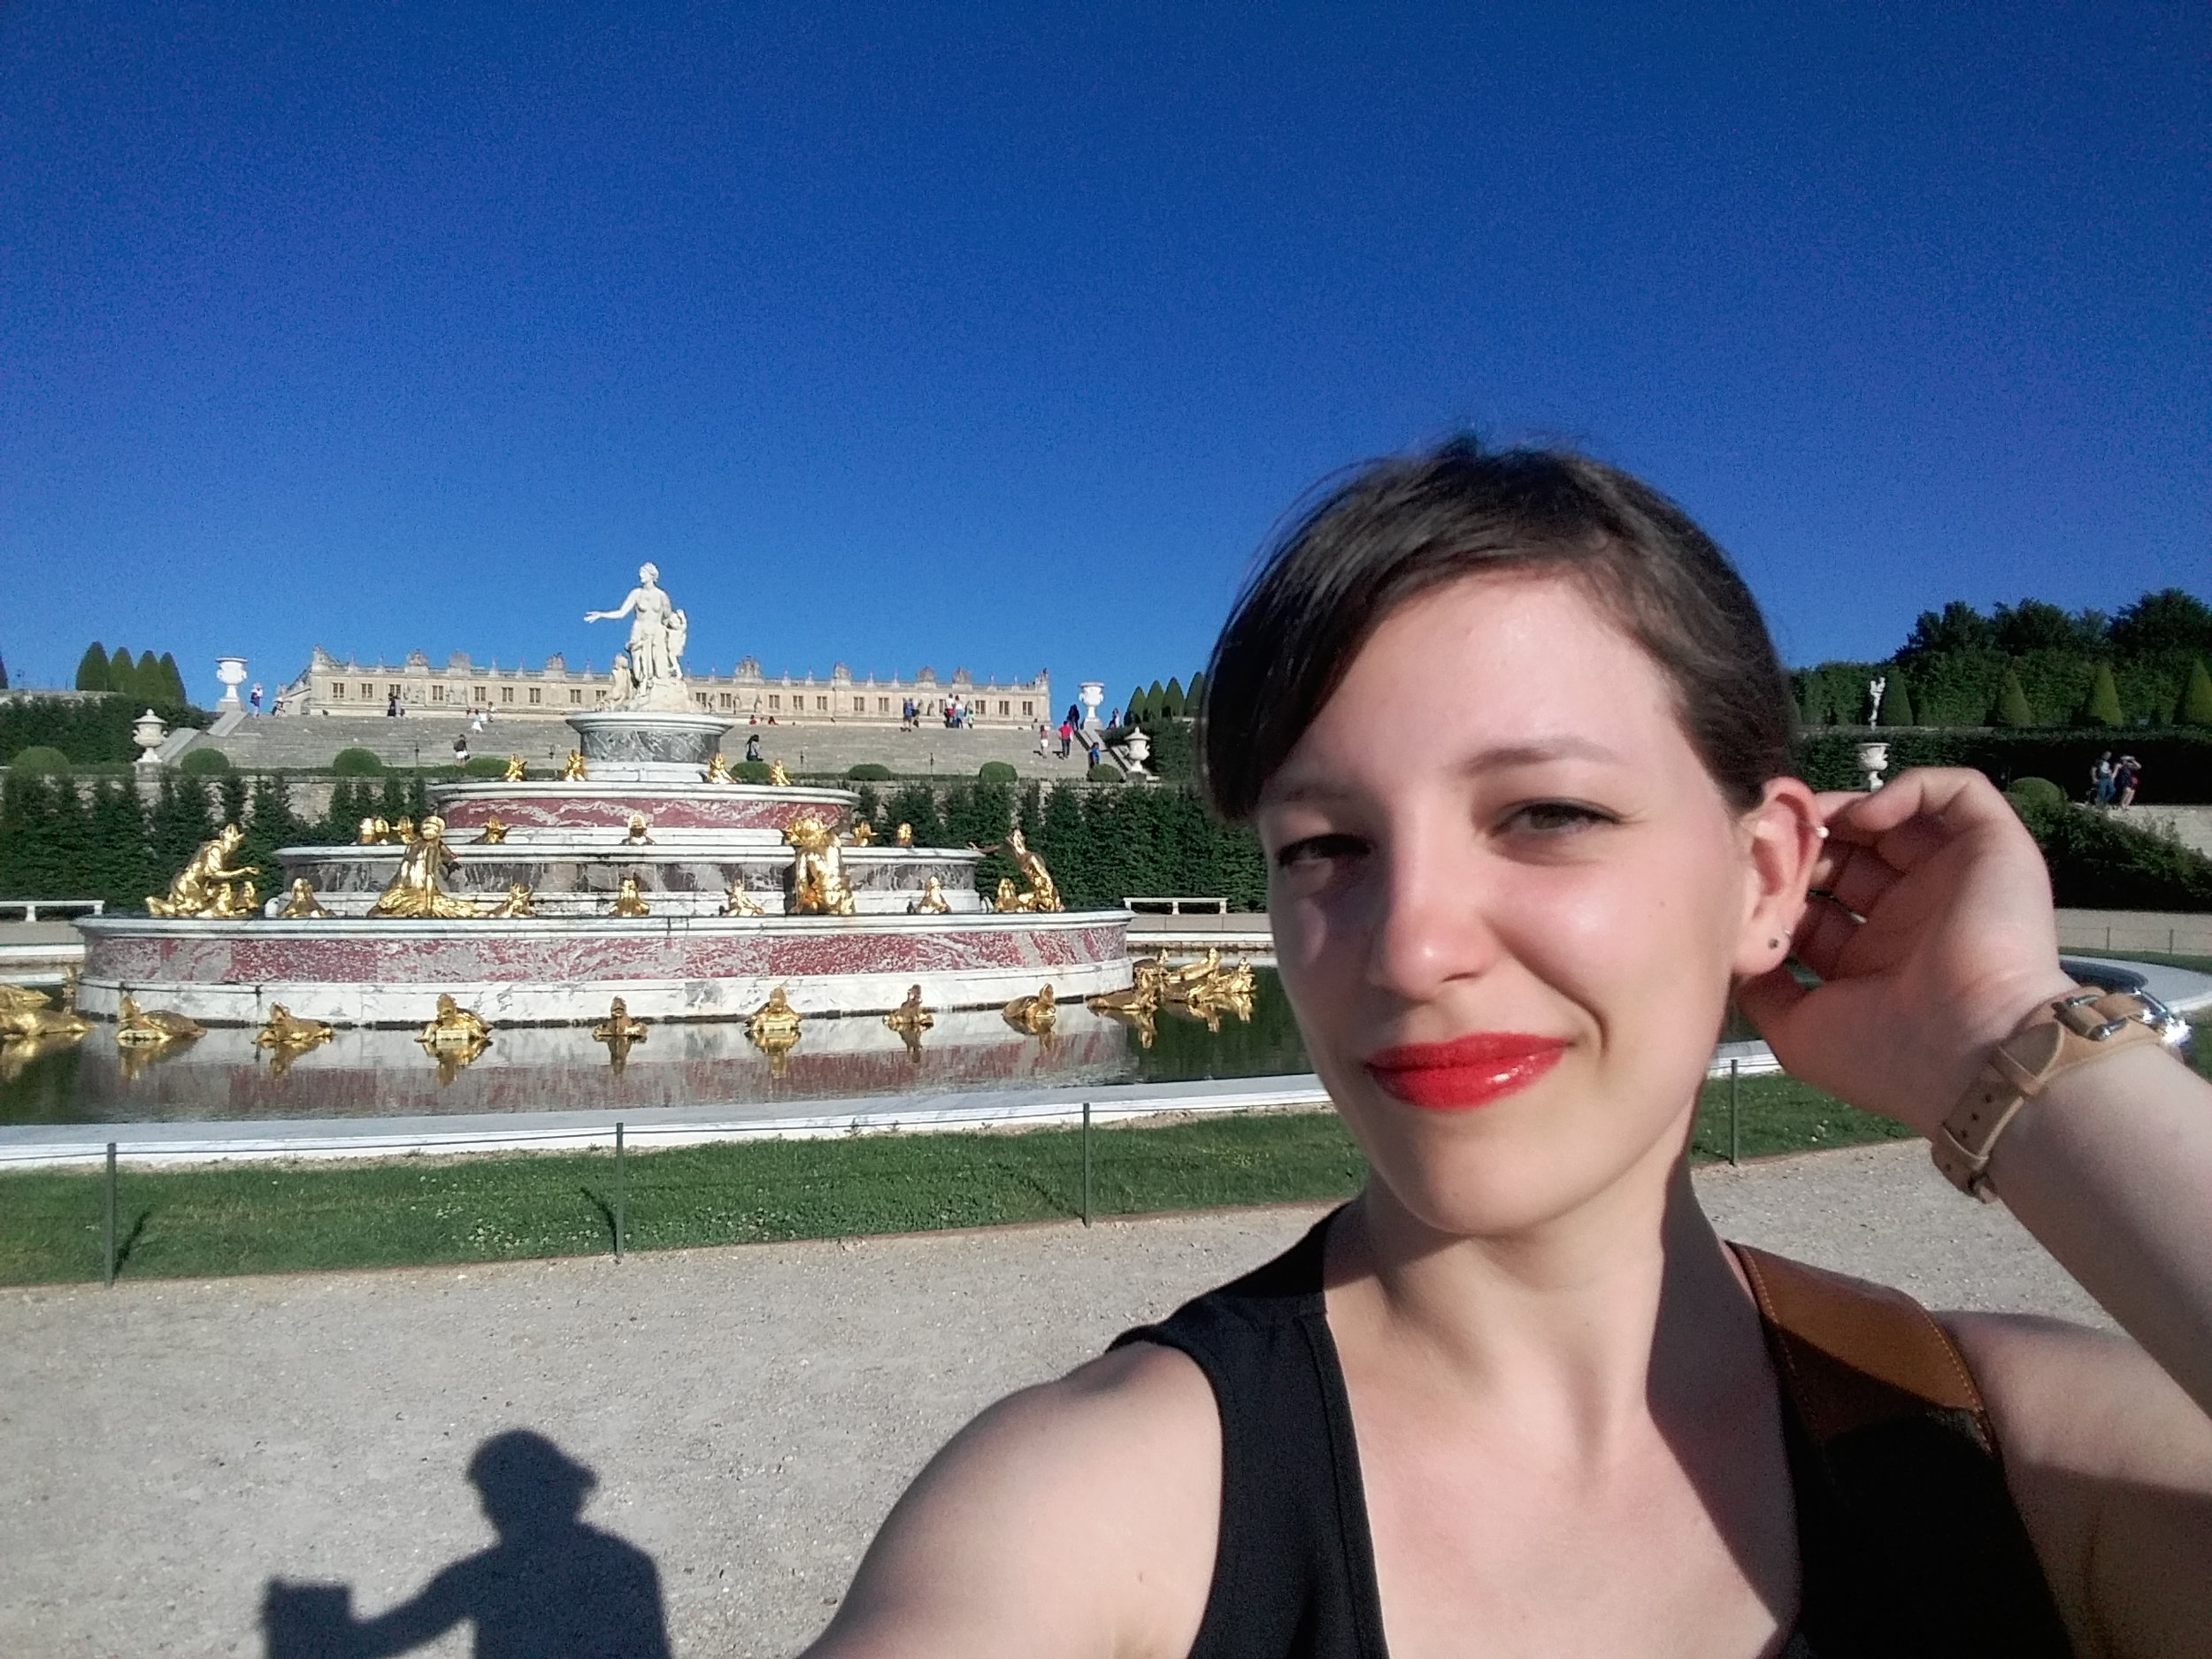 Meet Kate, posing here in a fantastic selfie at the majestic Versailles Palace.